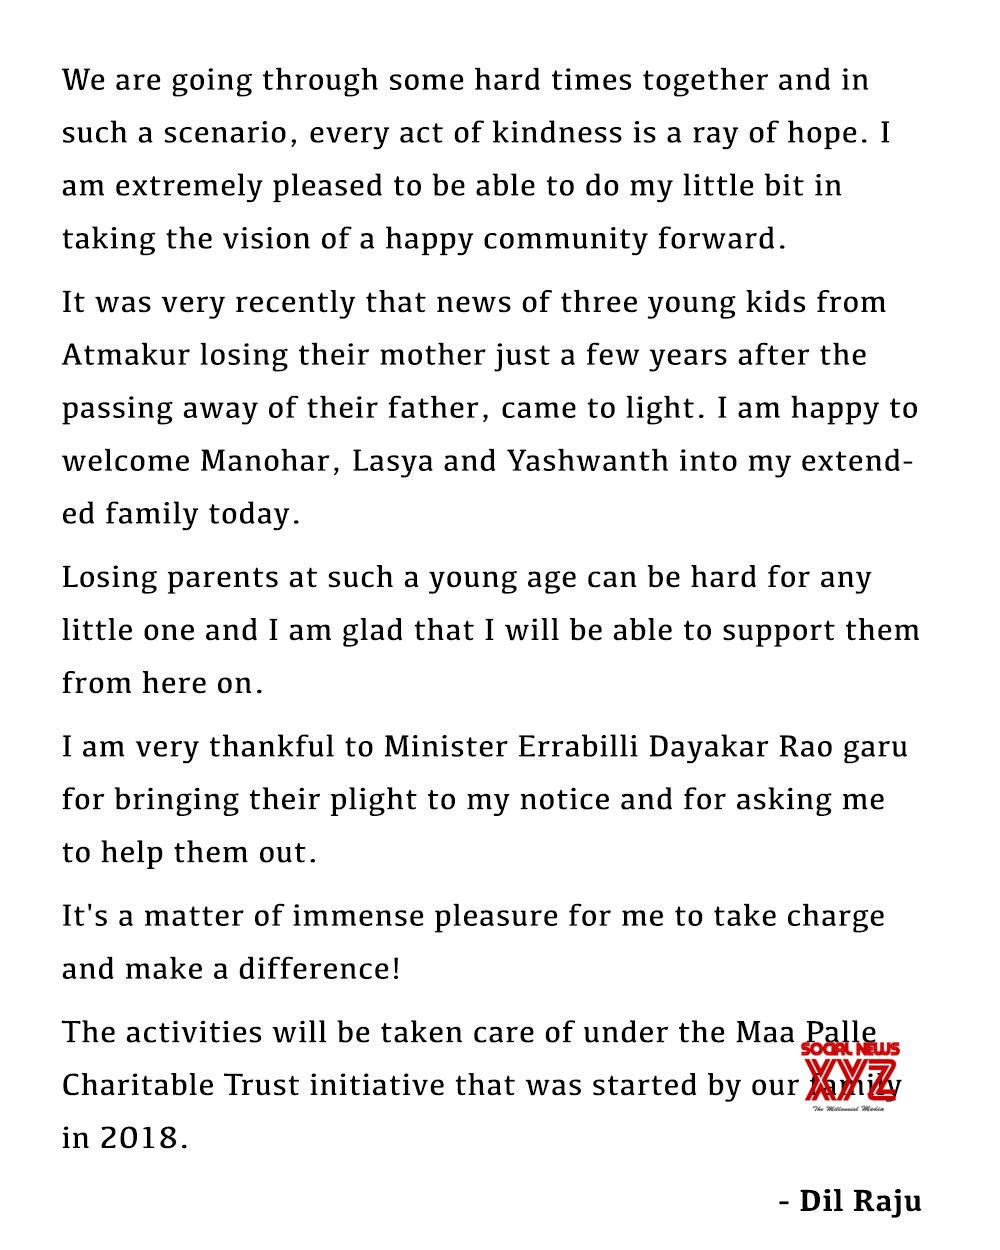 Dil Raju Helps Orphan Kids After Call By Minister Errabelli Dayakar Rao To Help